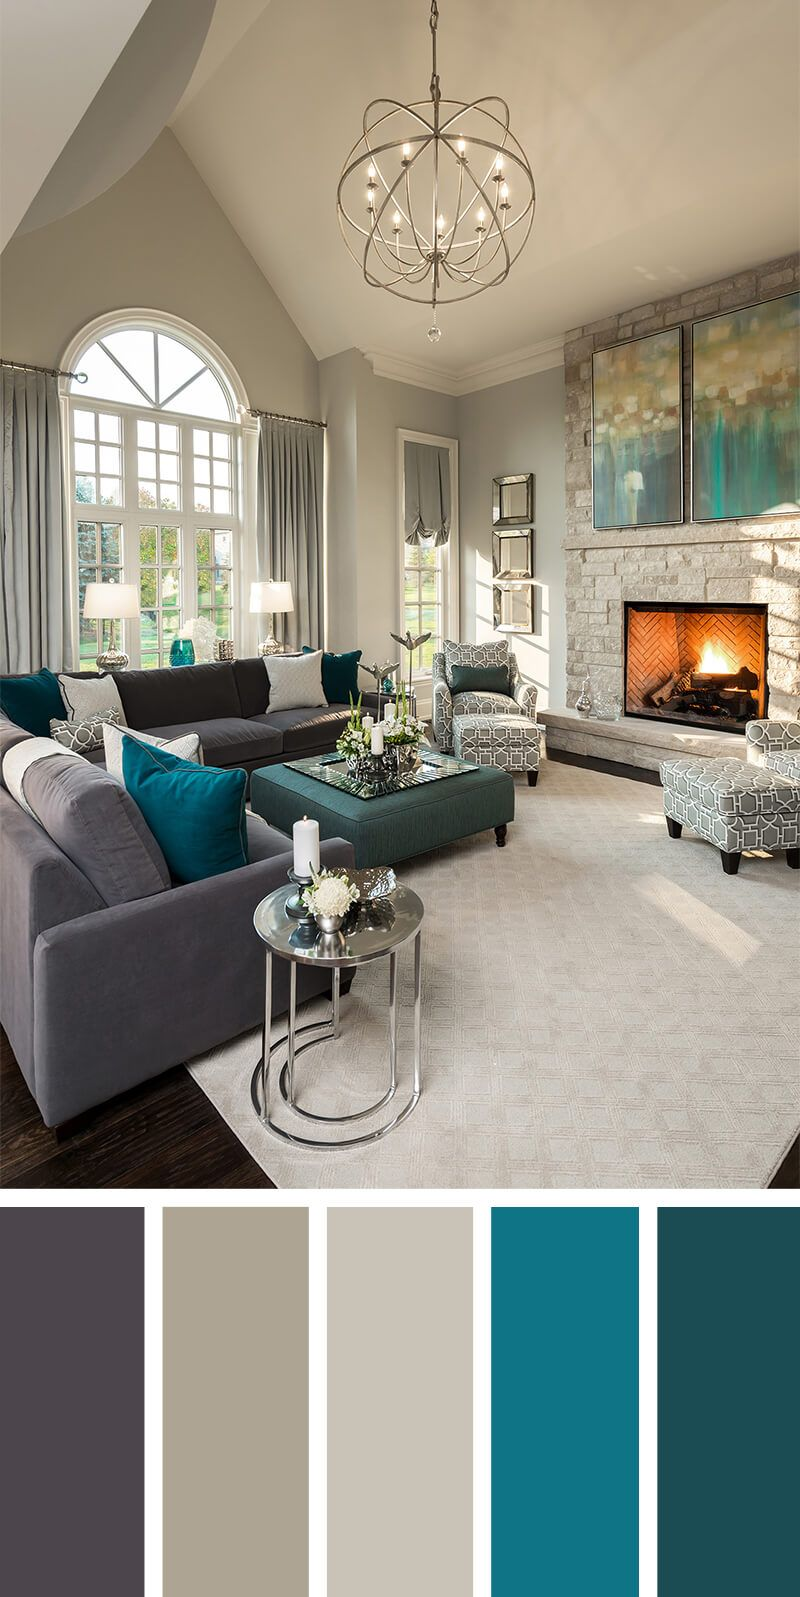 7 Living Room Color Schemes That Will Make Your Space Look Professionally Designed Living Room Color Schemes Good Living Room Colors Living Room Colors